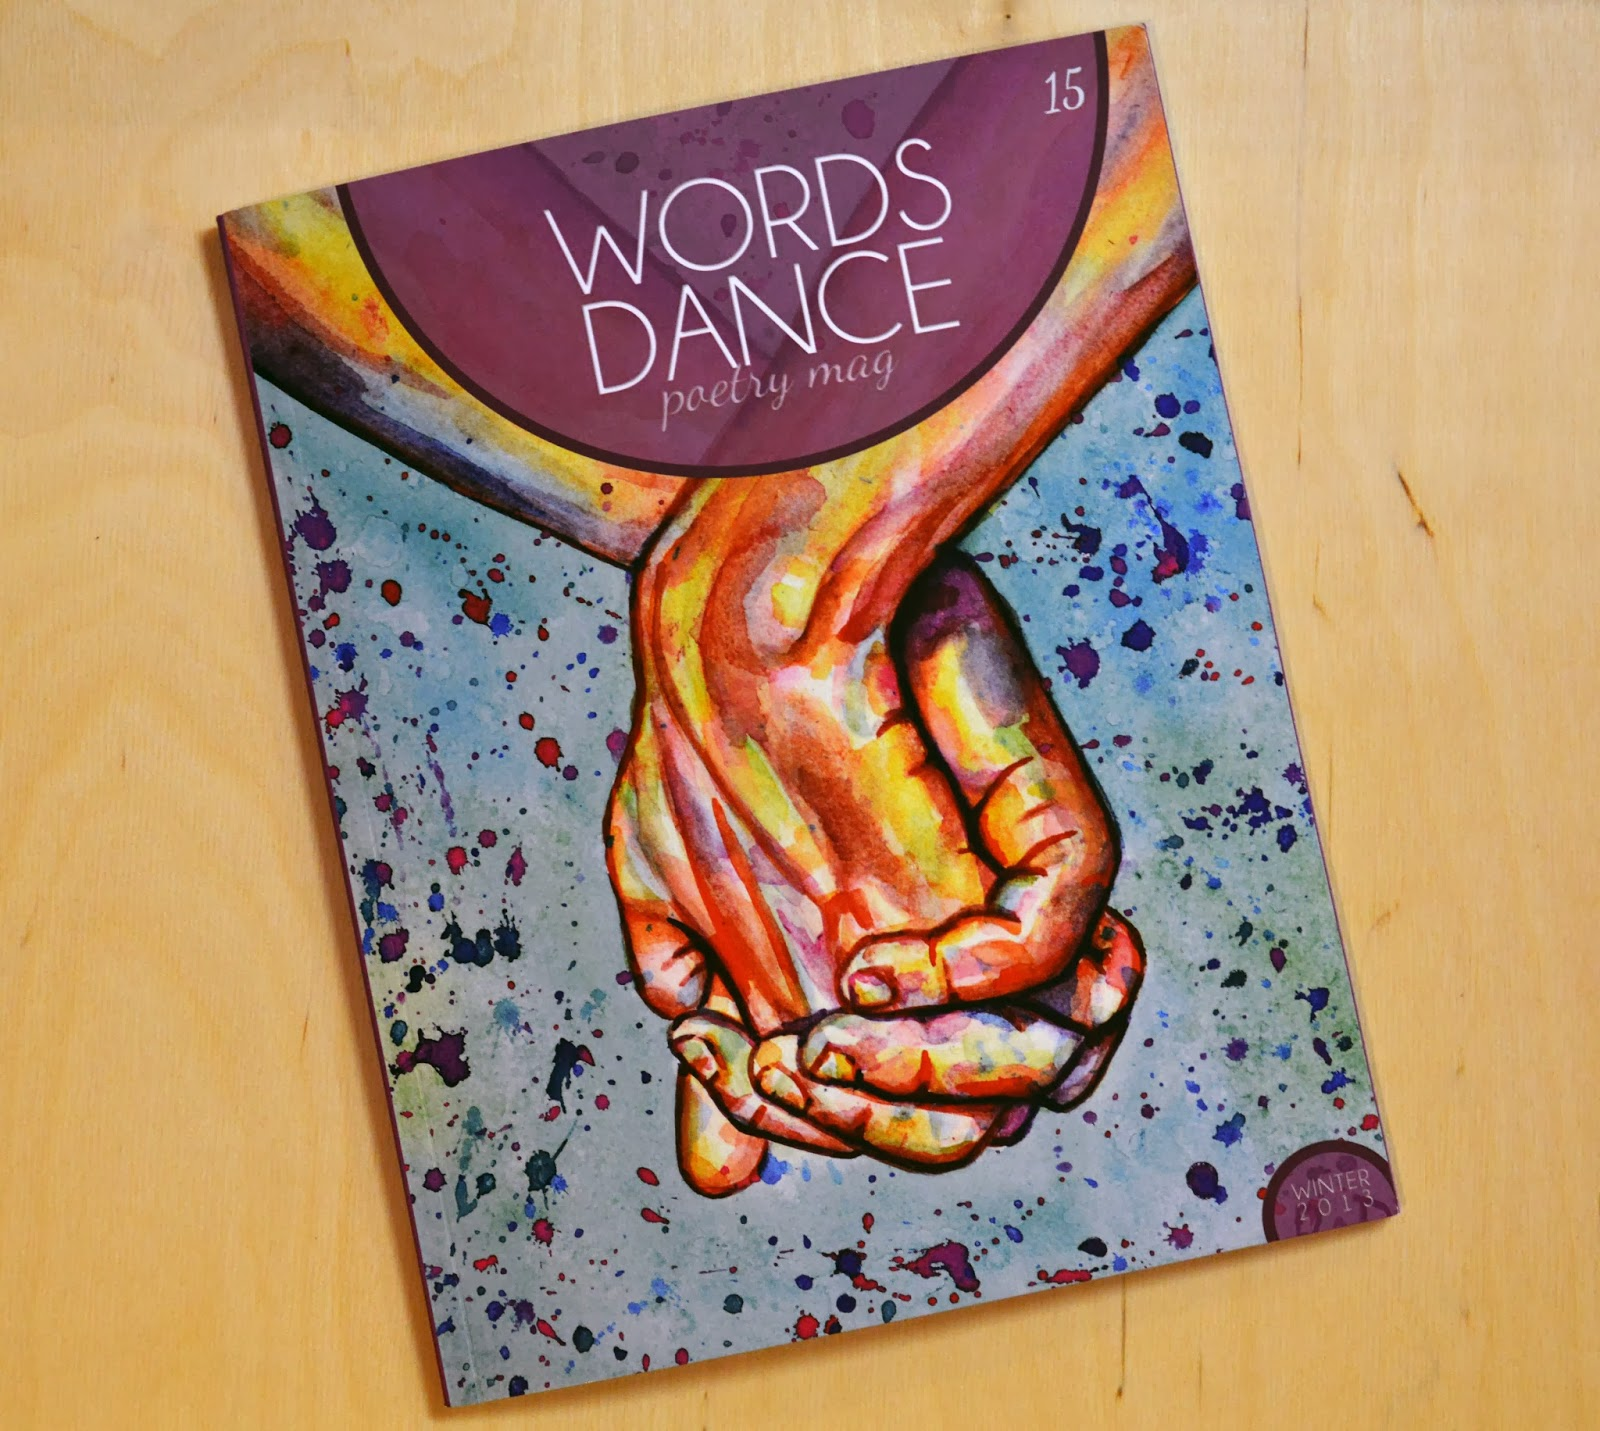 http://wordsdance.com/words-dance-issue-15/